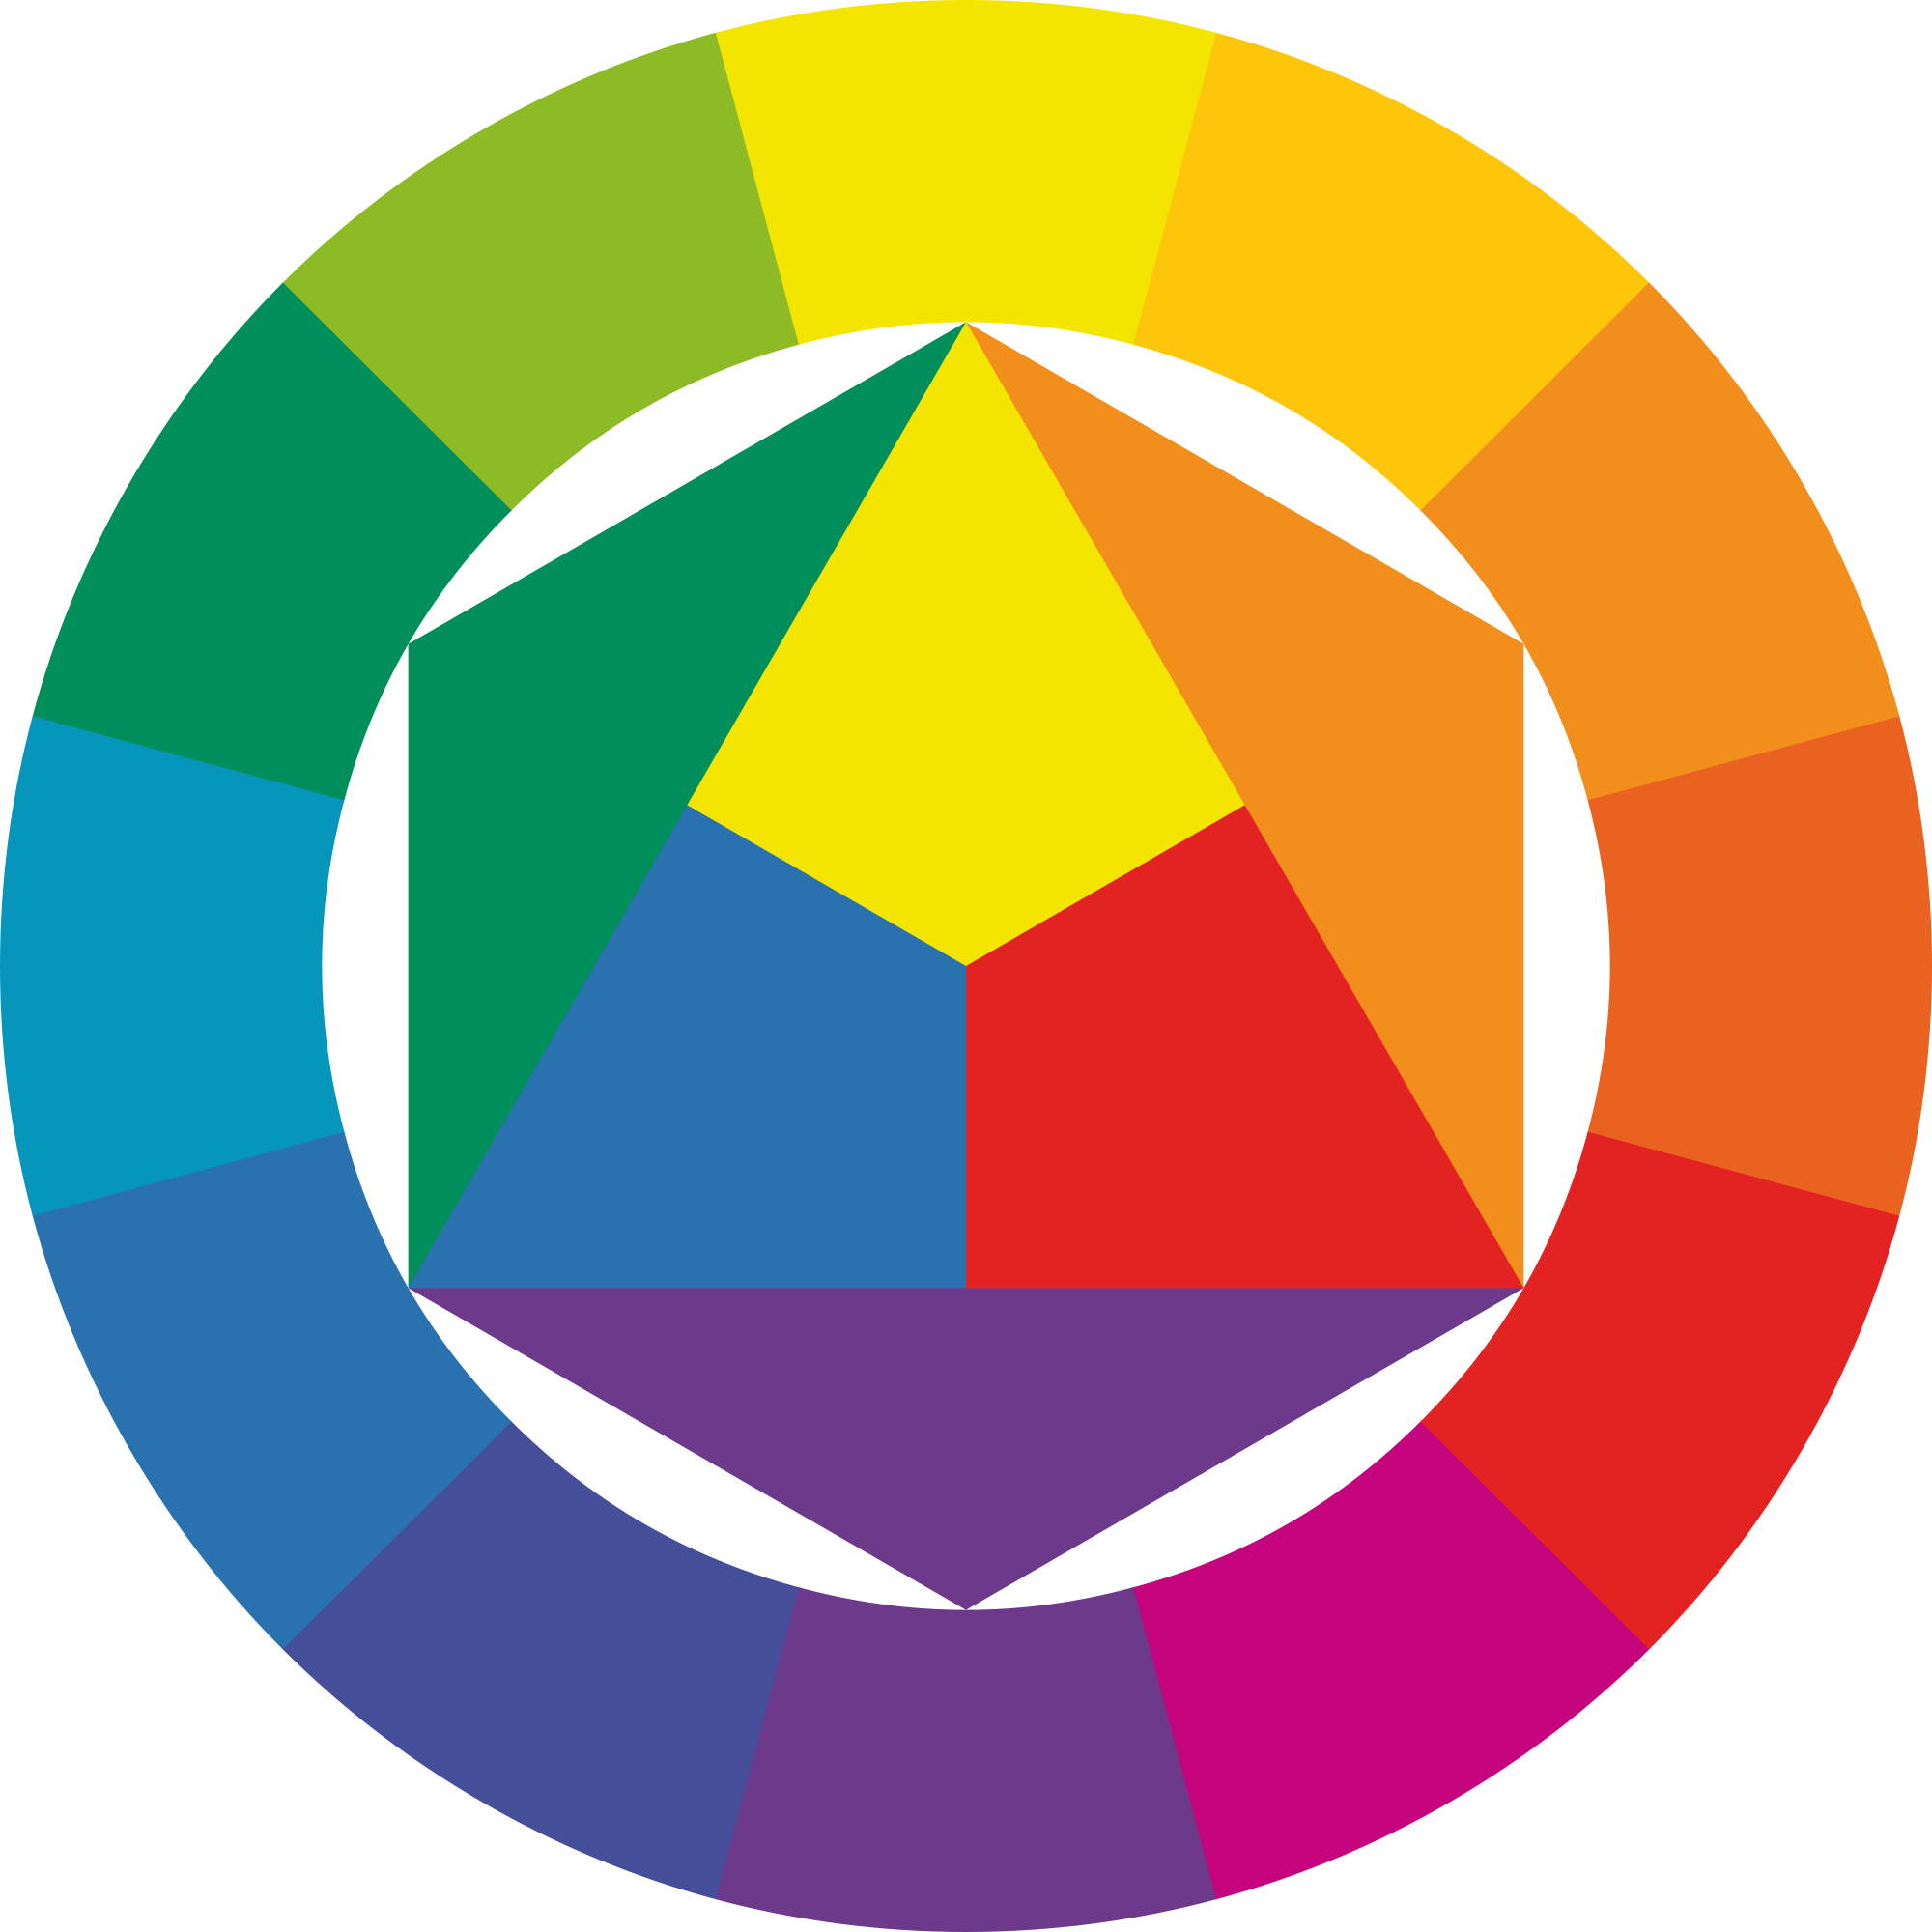 Physical Properties Of Colors And Our Subjective Perception Itten Introduces The 12 Part Color Wheel To Represent Visible Spectrum Light